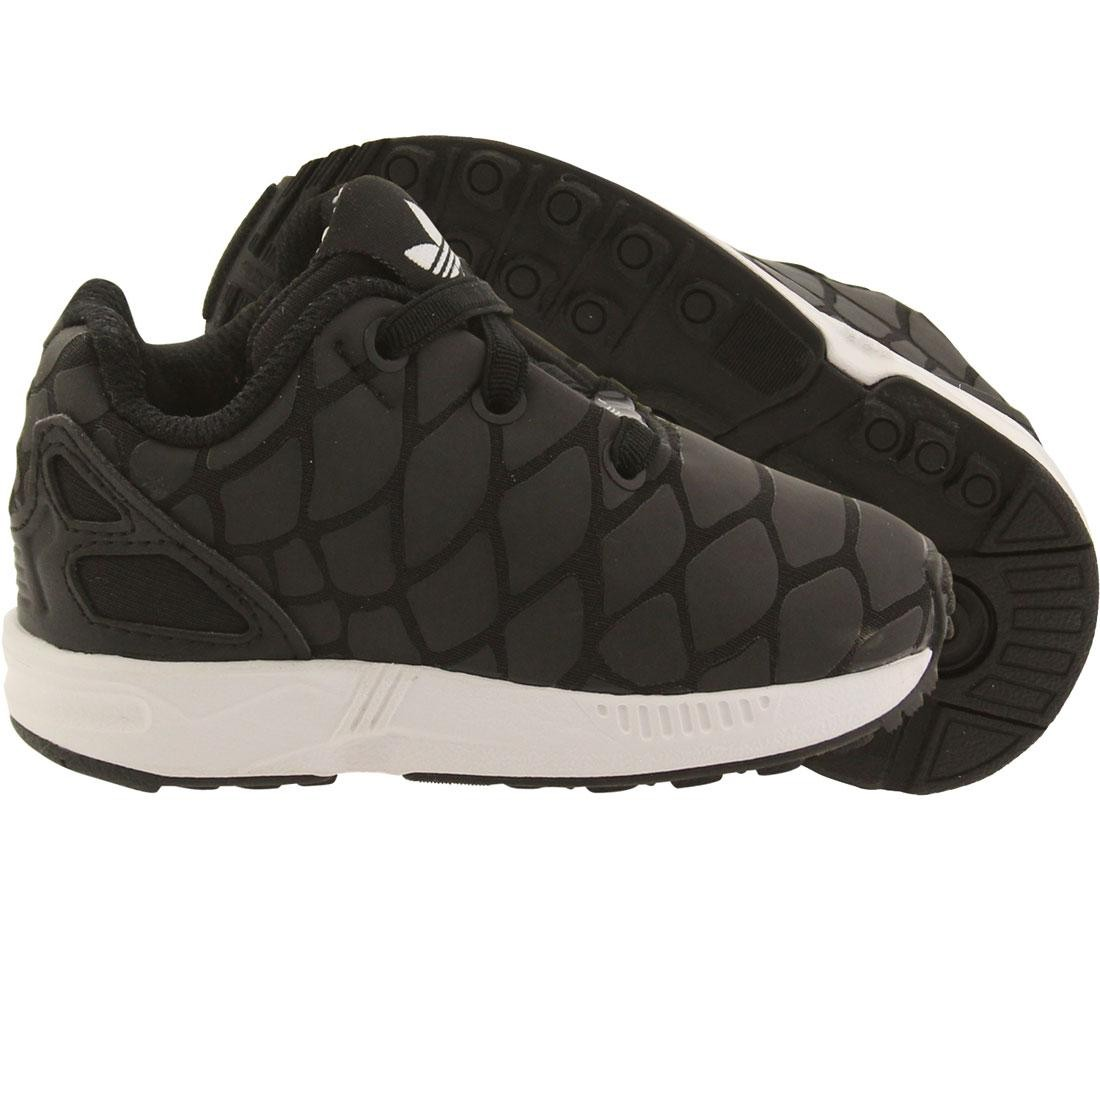 promo code a70e5 1b29c Adidas Toddlers ZX Flux Xenopeltis (black / core black / running white)